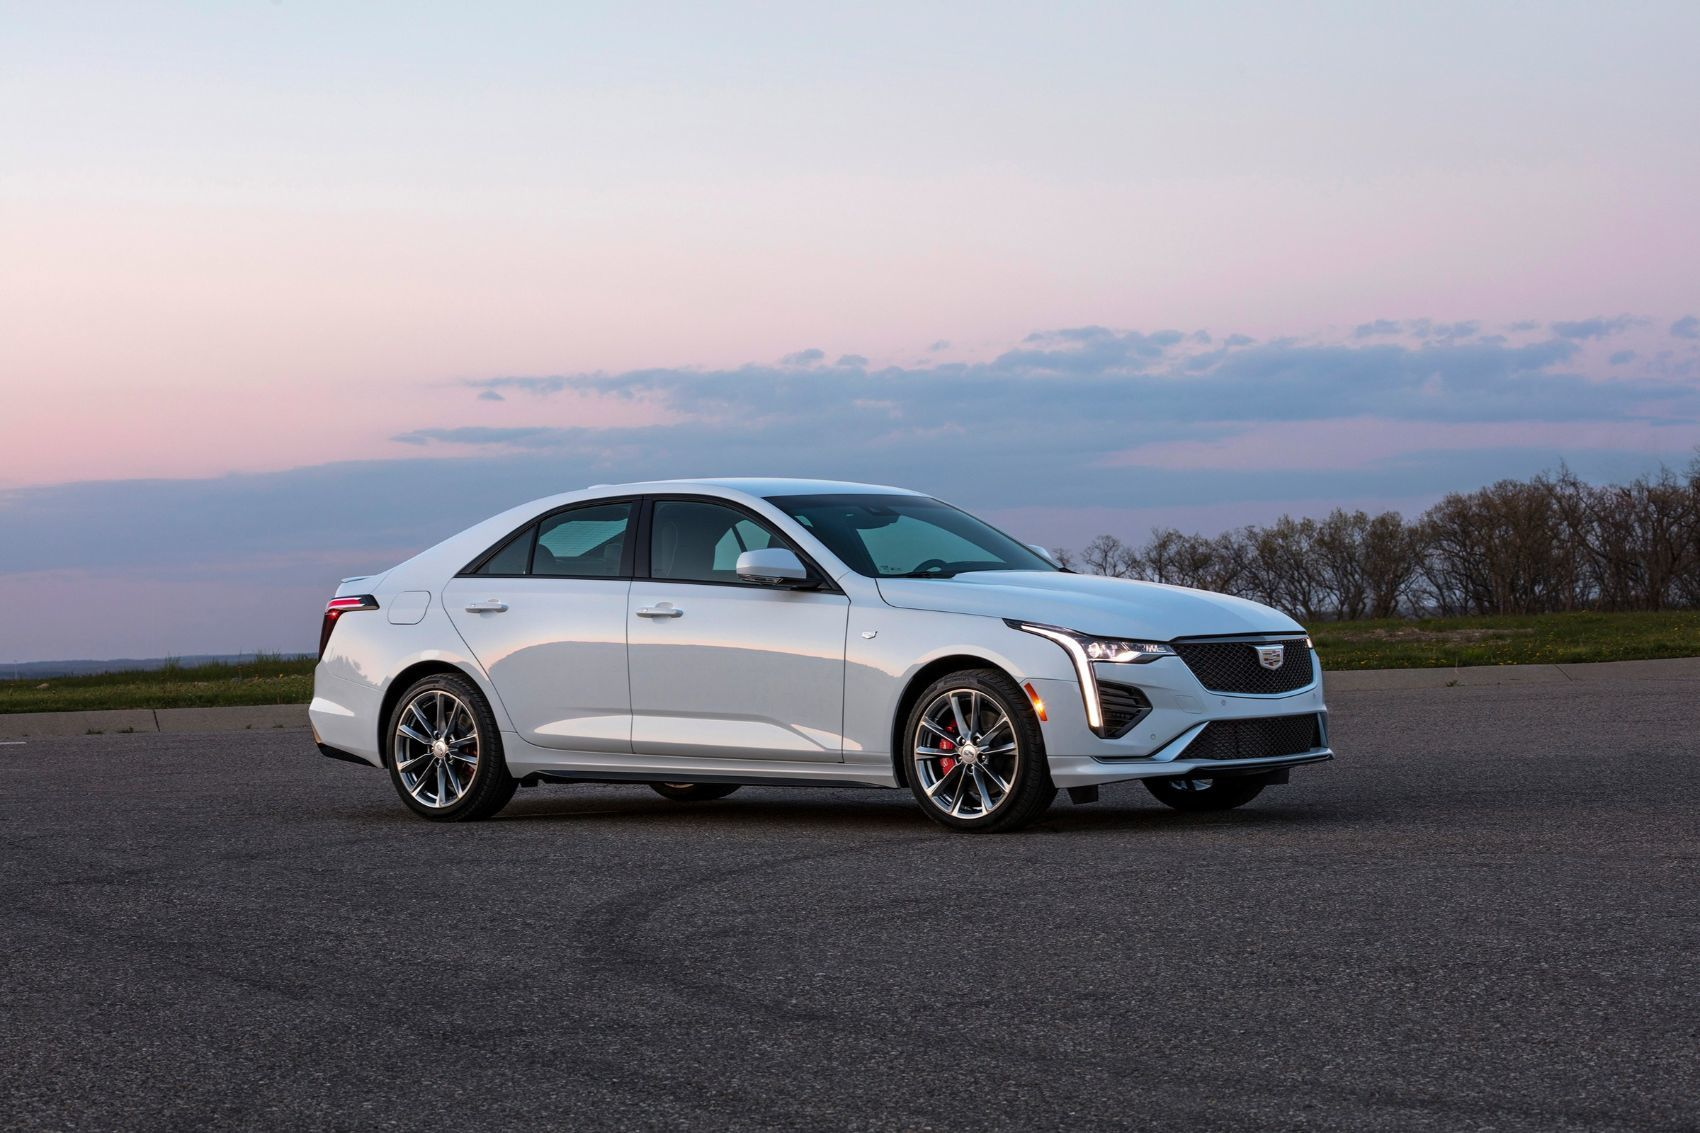 2020 Cadillac CT4: Sportiest Cadillac Ever? Maybe So.